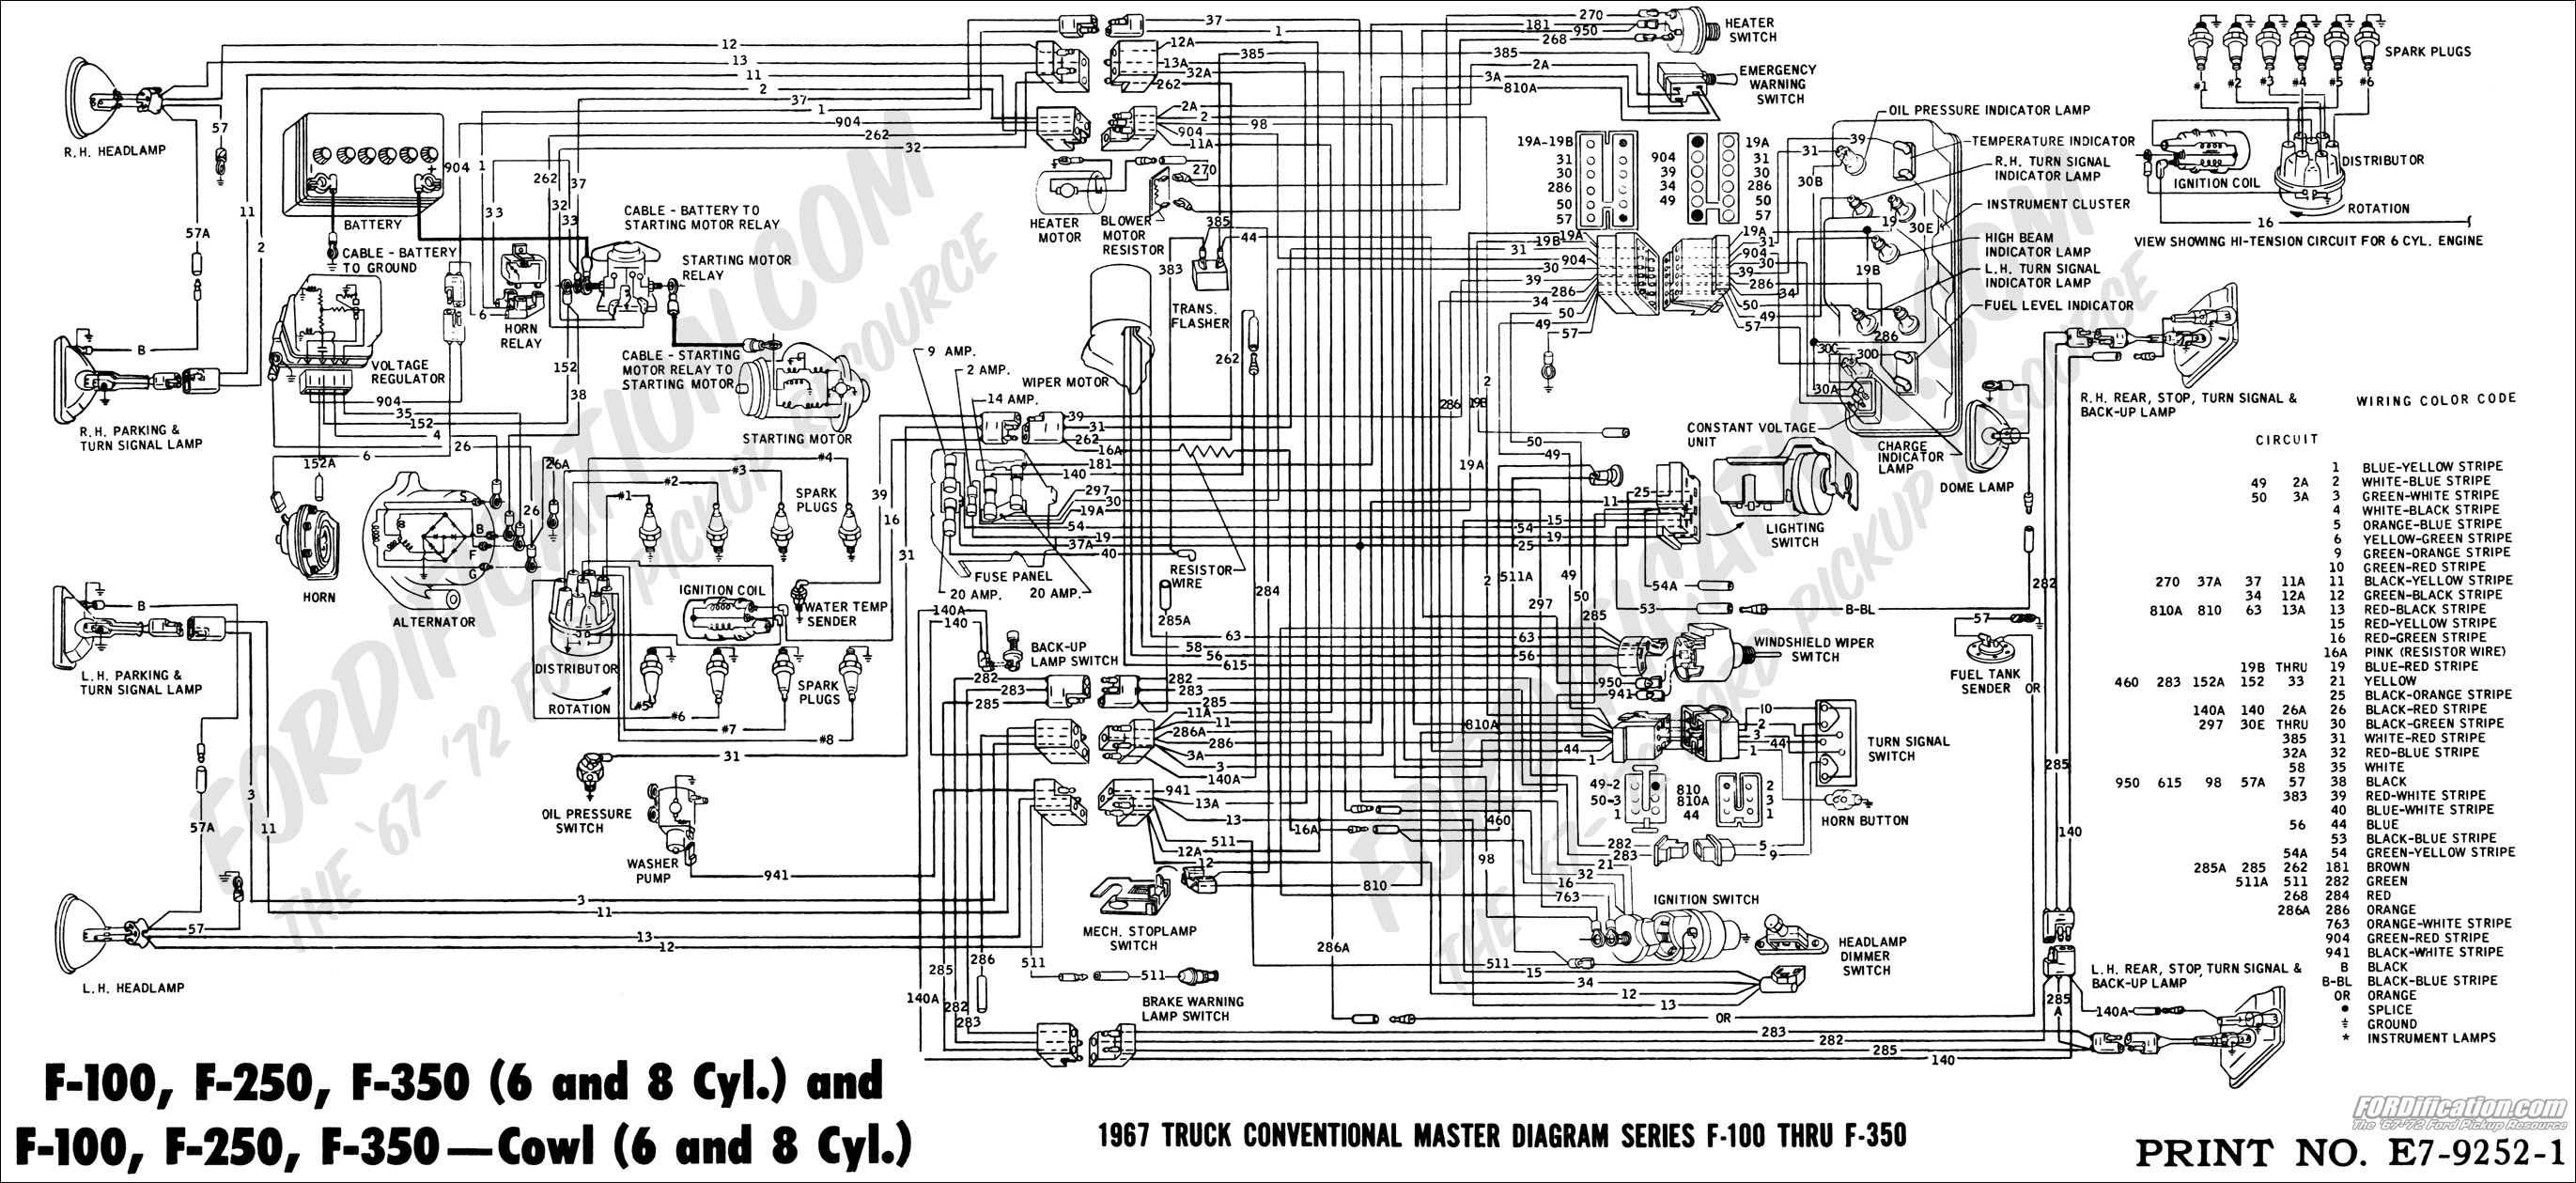 F150 Wiring Schematic Diagram Source A Drum Switch 91 Ford Diagrams Truck